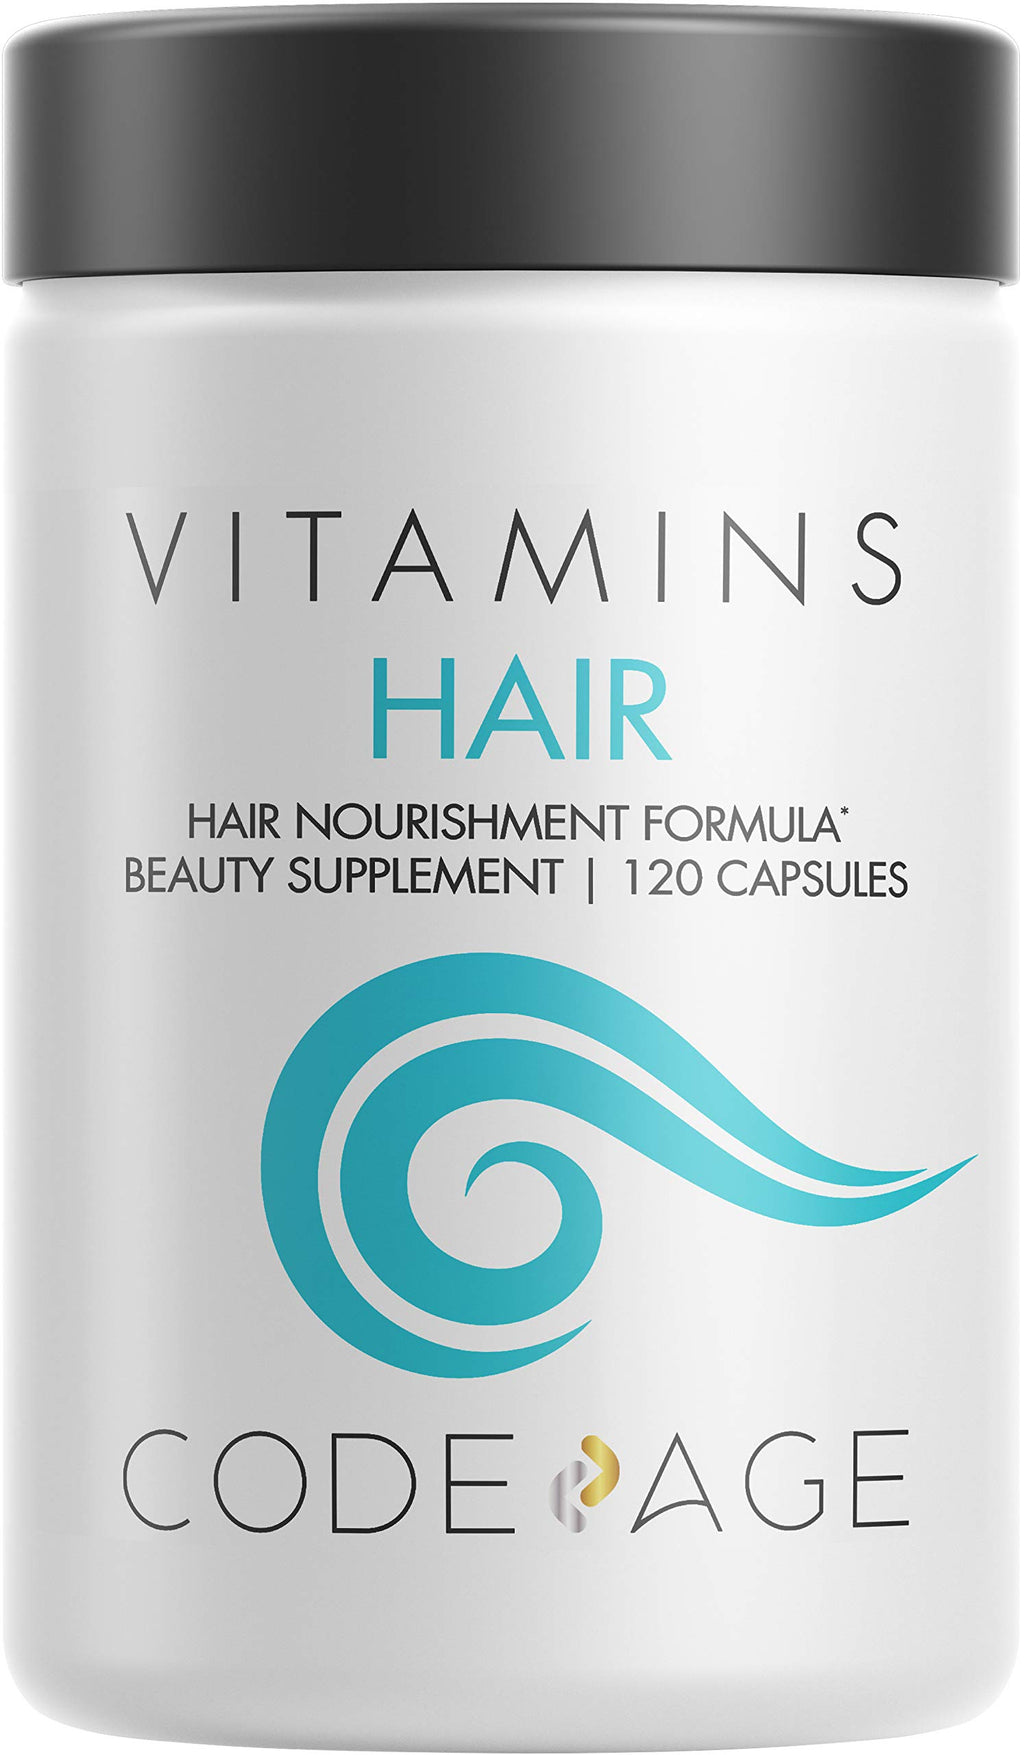 Hair Vitamins, Biotin, Keratin Supplement –Collagen, Vitamin A, B12, C, D3 & E - Zinc, Probiotic, Omega-3, Enzymes - Hair Care Pills – All Hair Colors & Types - Natural, Non-GMO - 120 Capsules